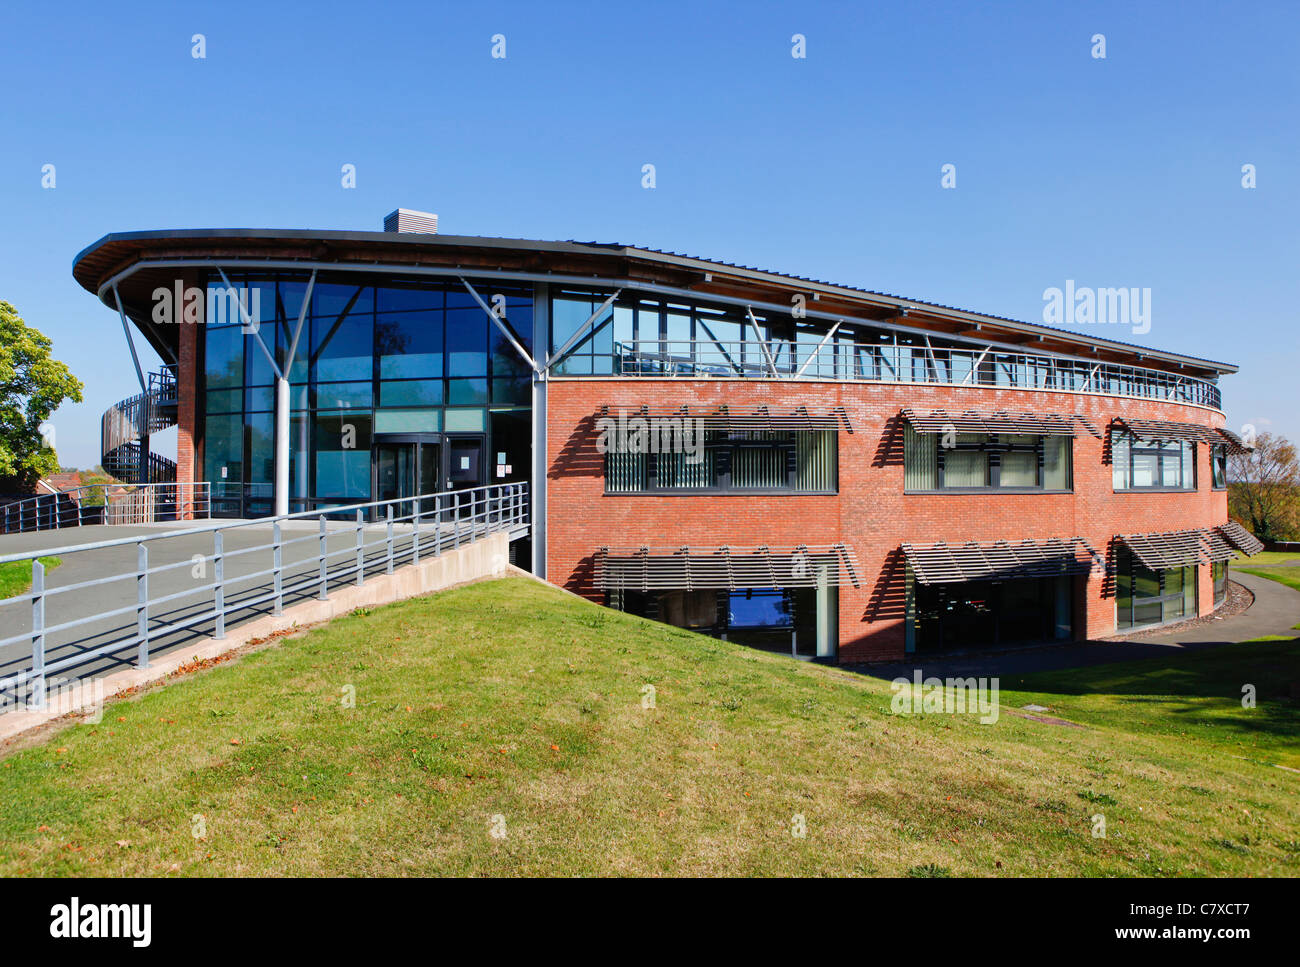 e-innovation centre at The University of Wolverhampton, Telford Campus, Shropshire. - Stock Image